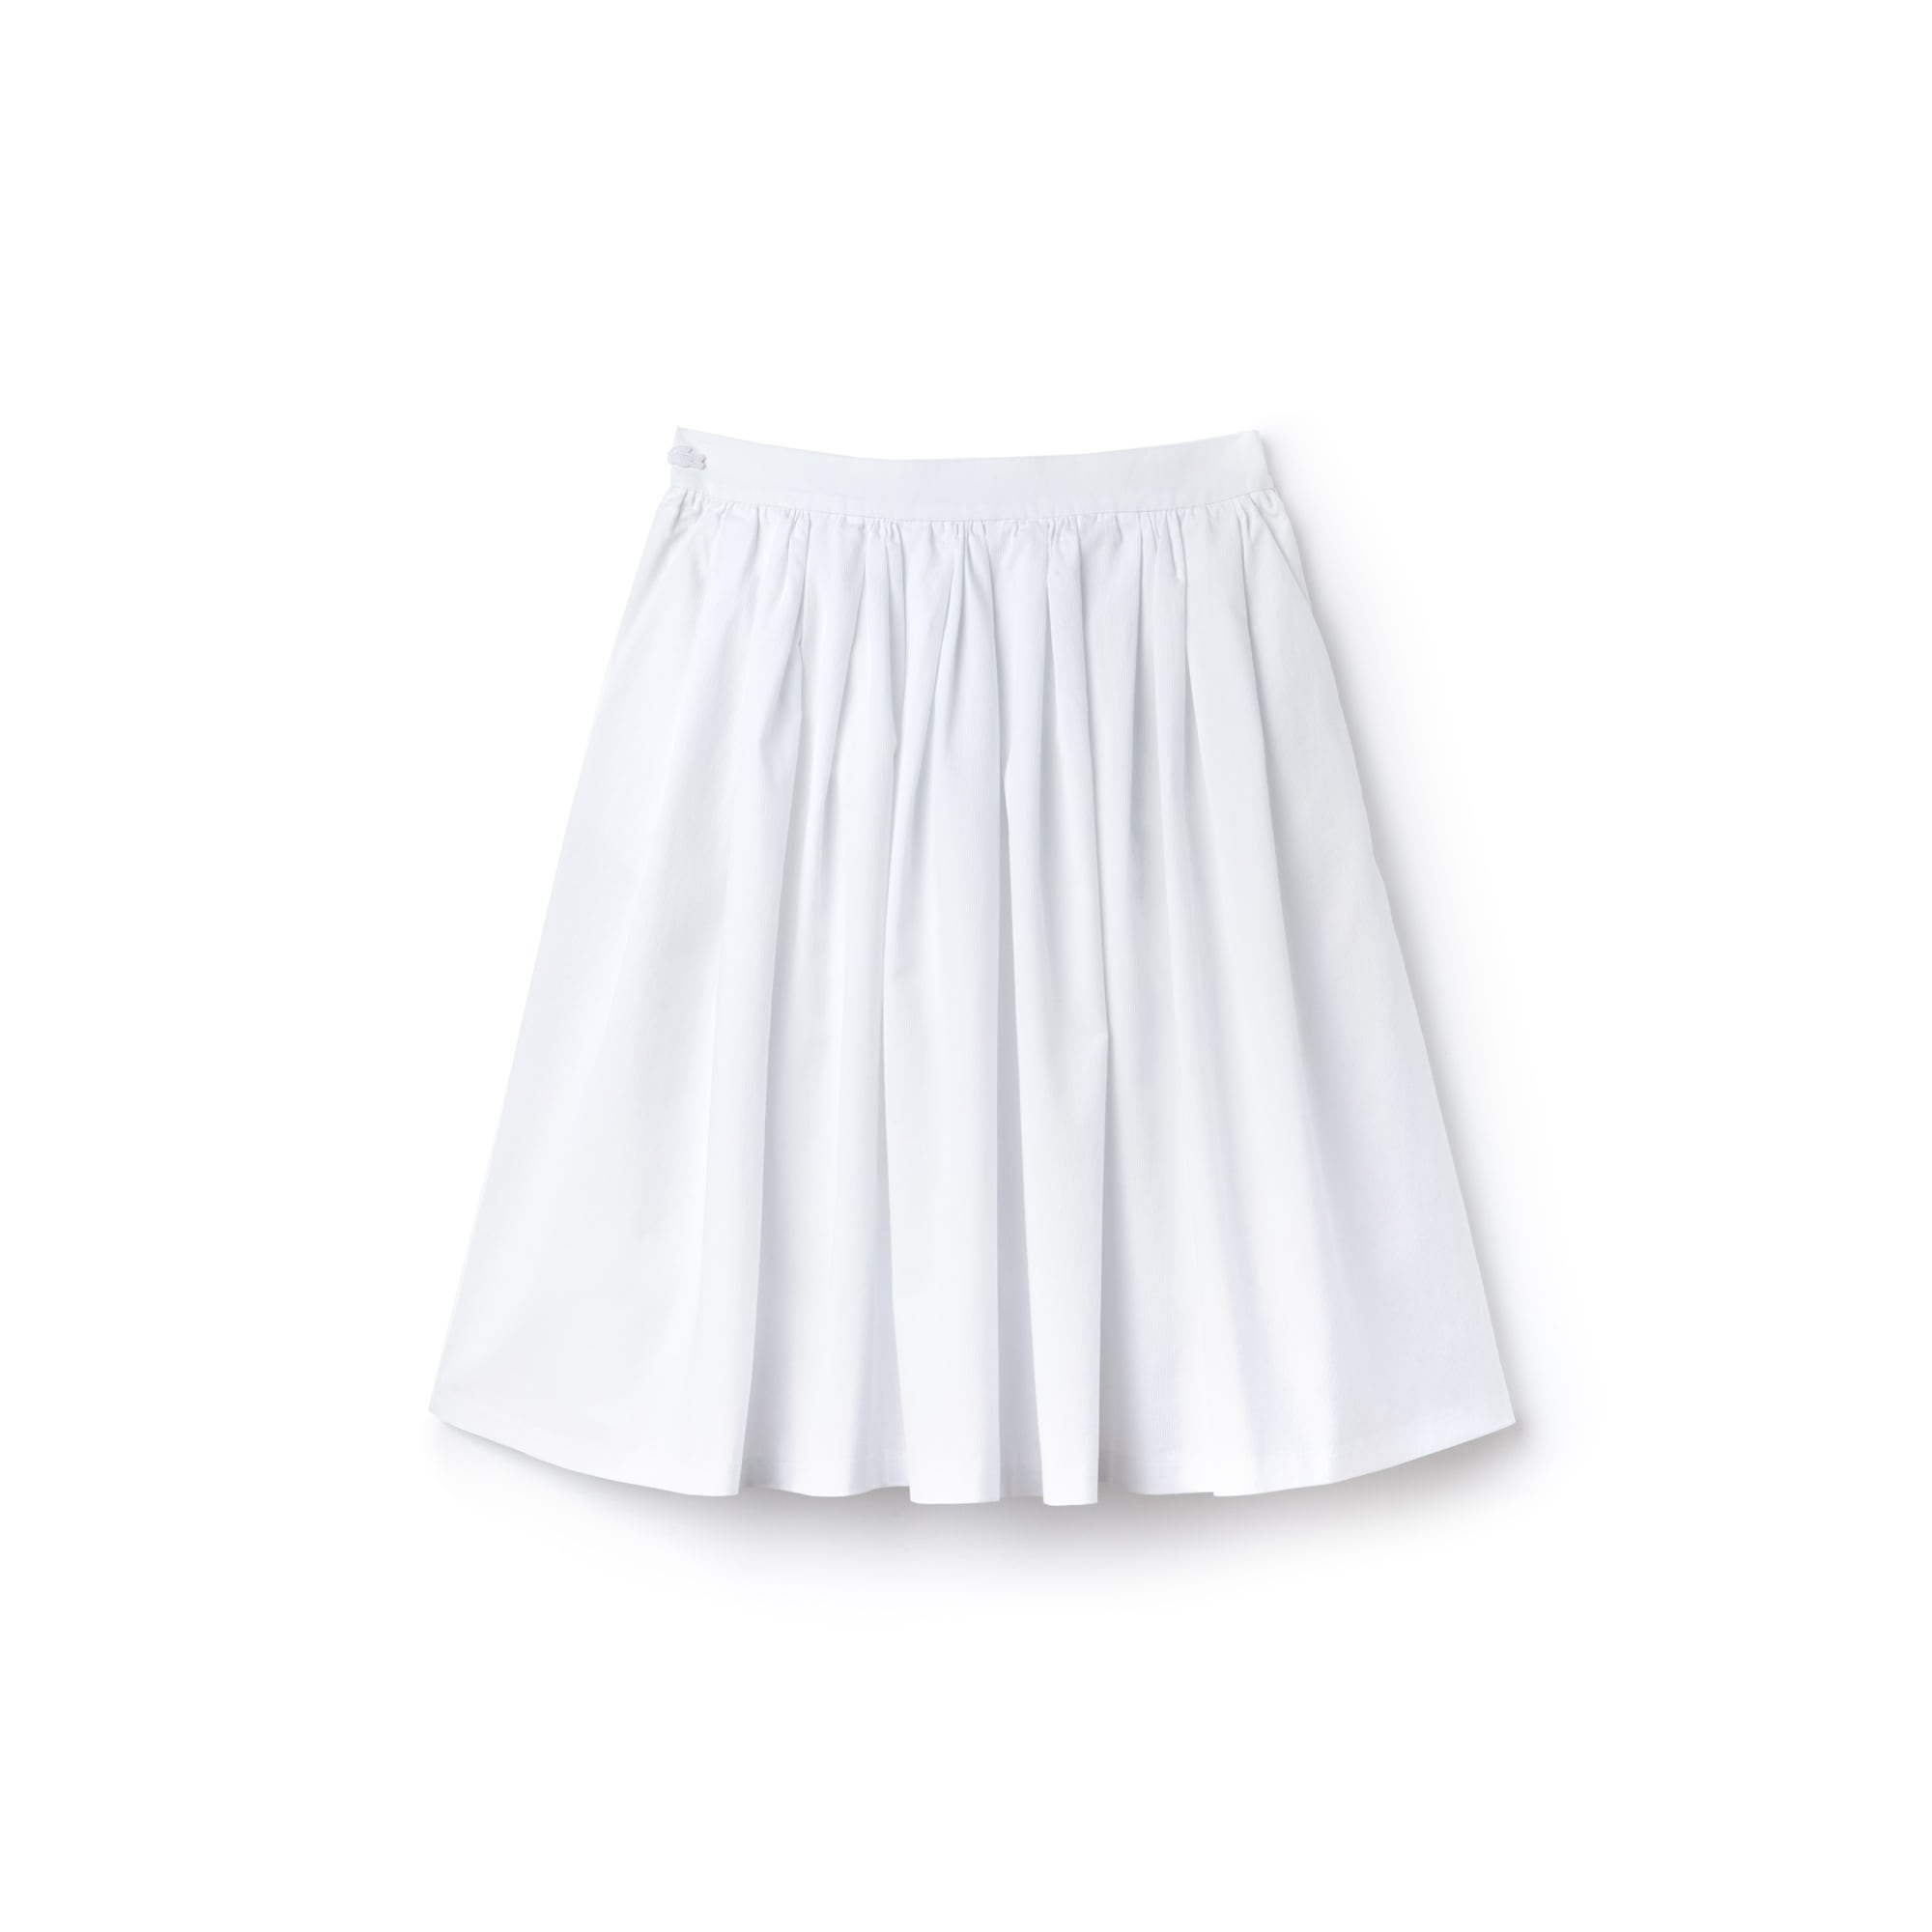 Women's Texturized Cotton Gathered Mid-Length Skirt